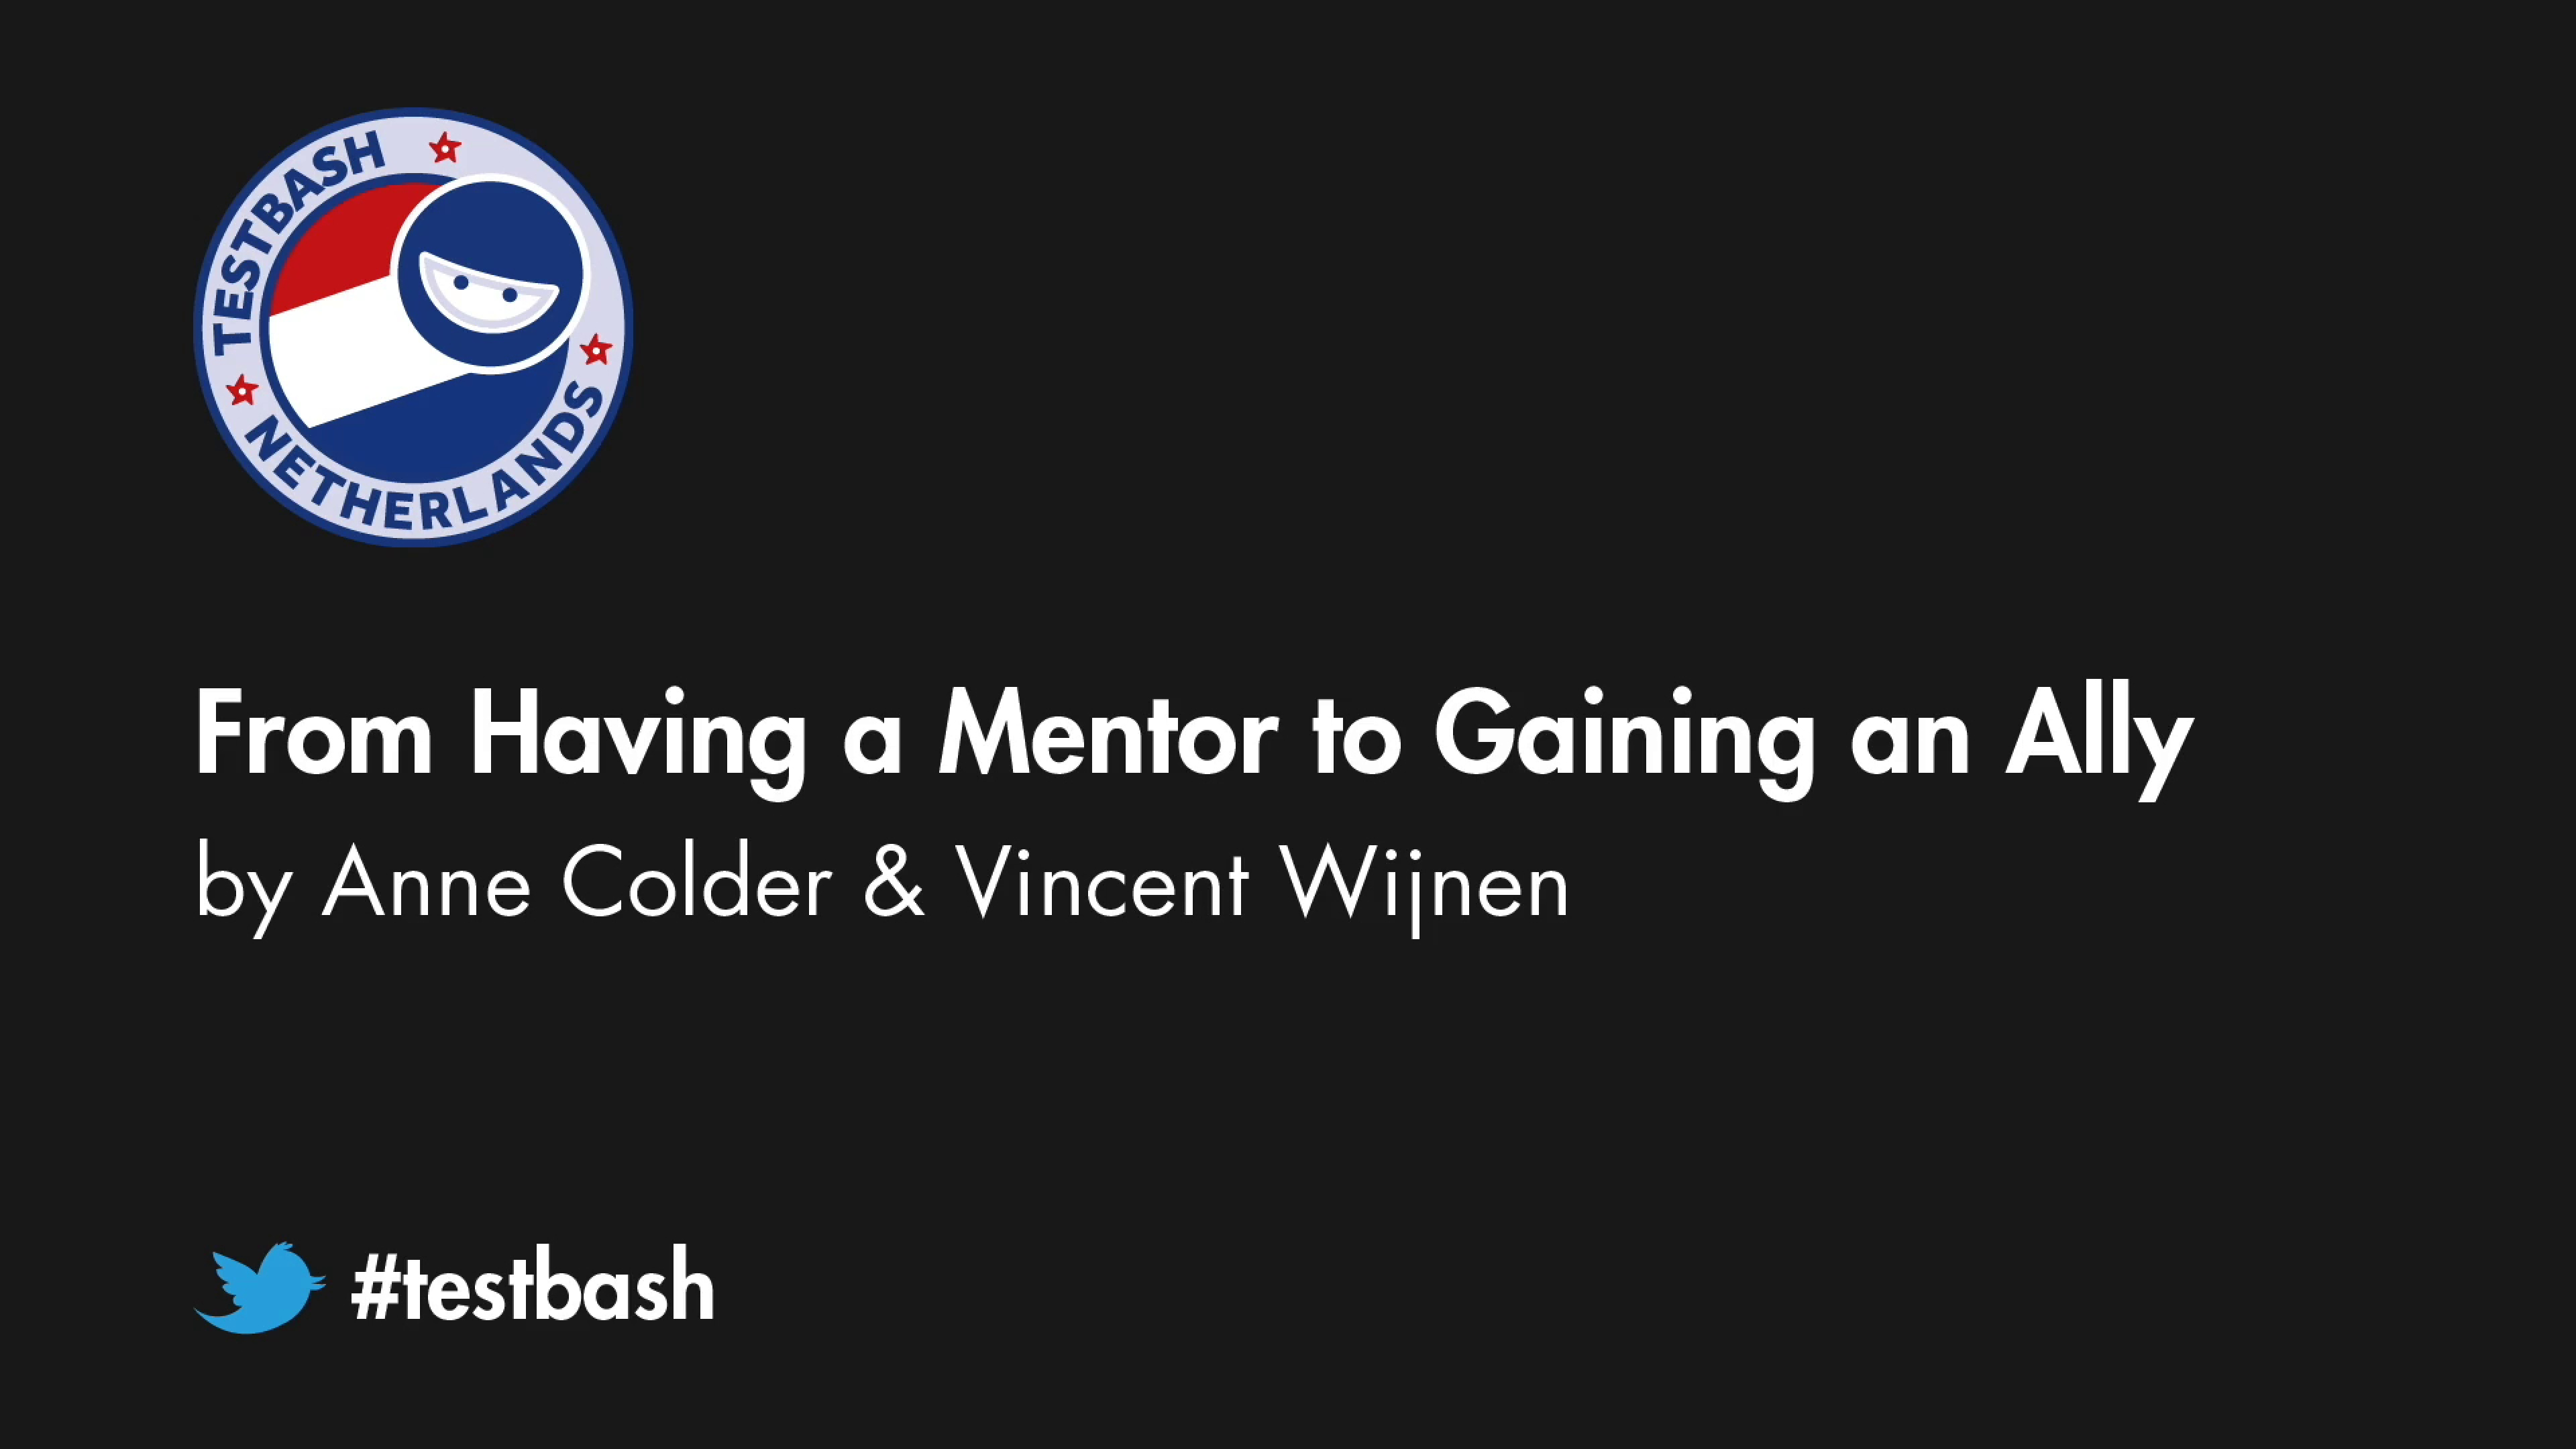 From Having a Mentor to Gaining an Ally - Anne Colder & Vincent Wijnen